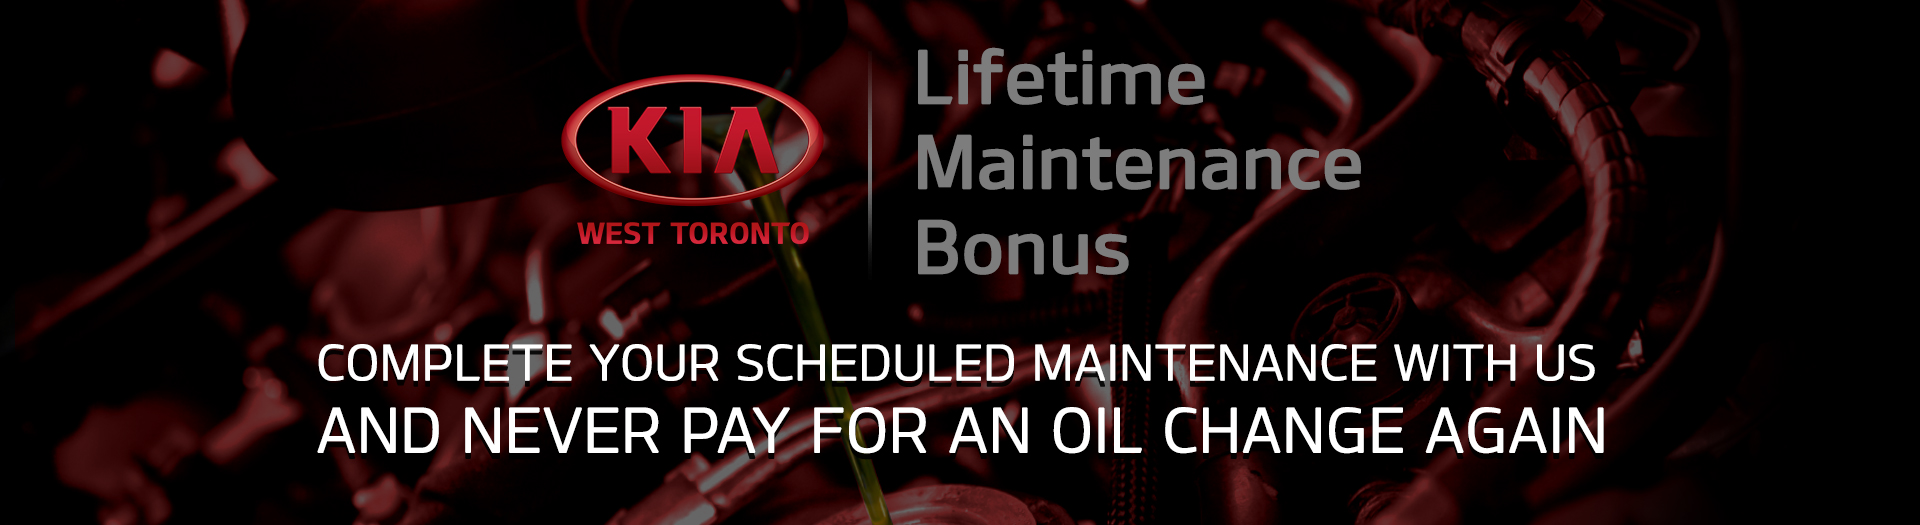 Lifetime-maintenance-bonus